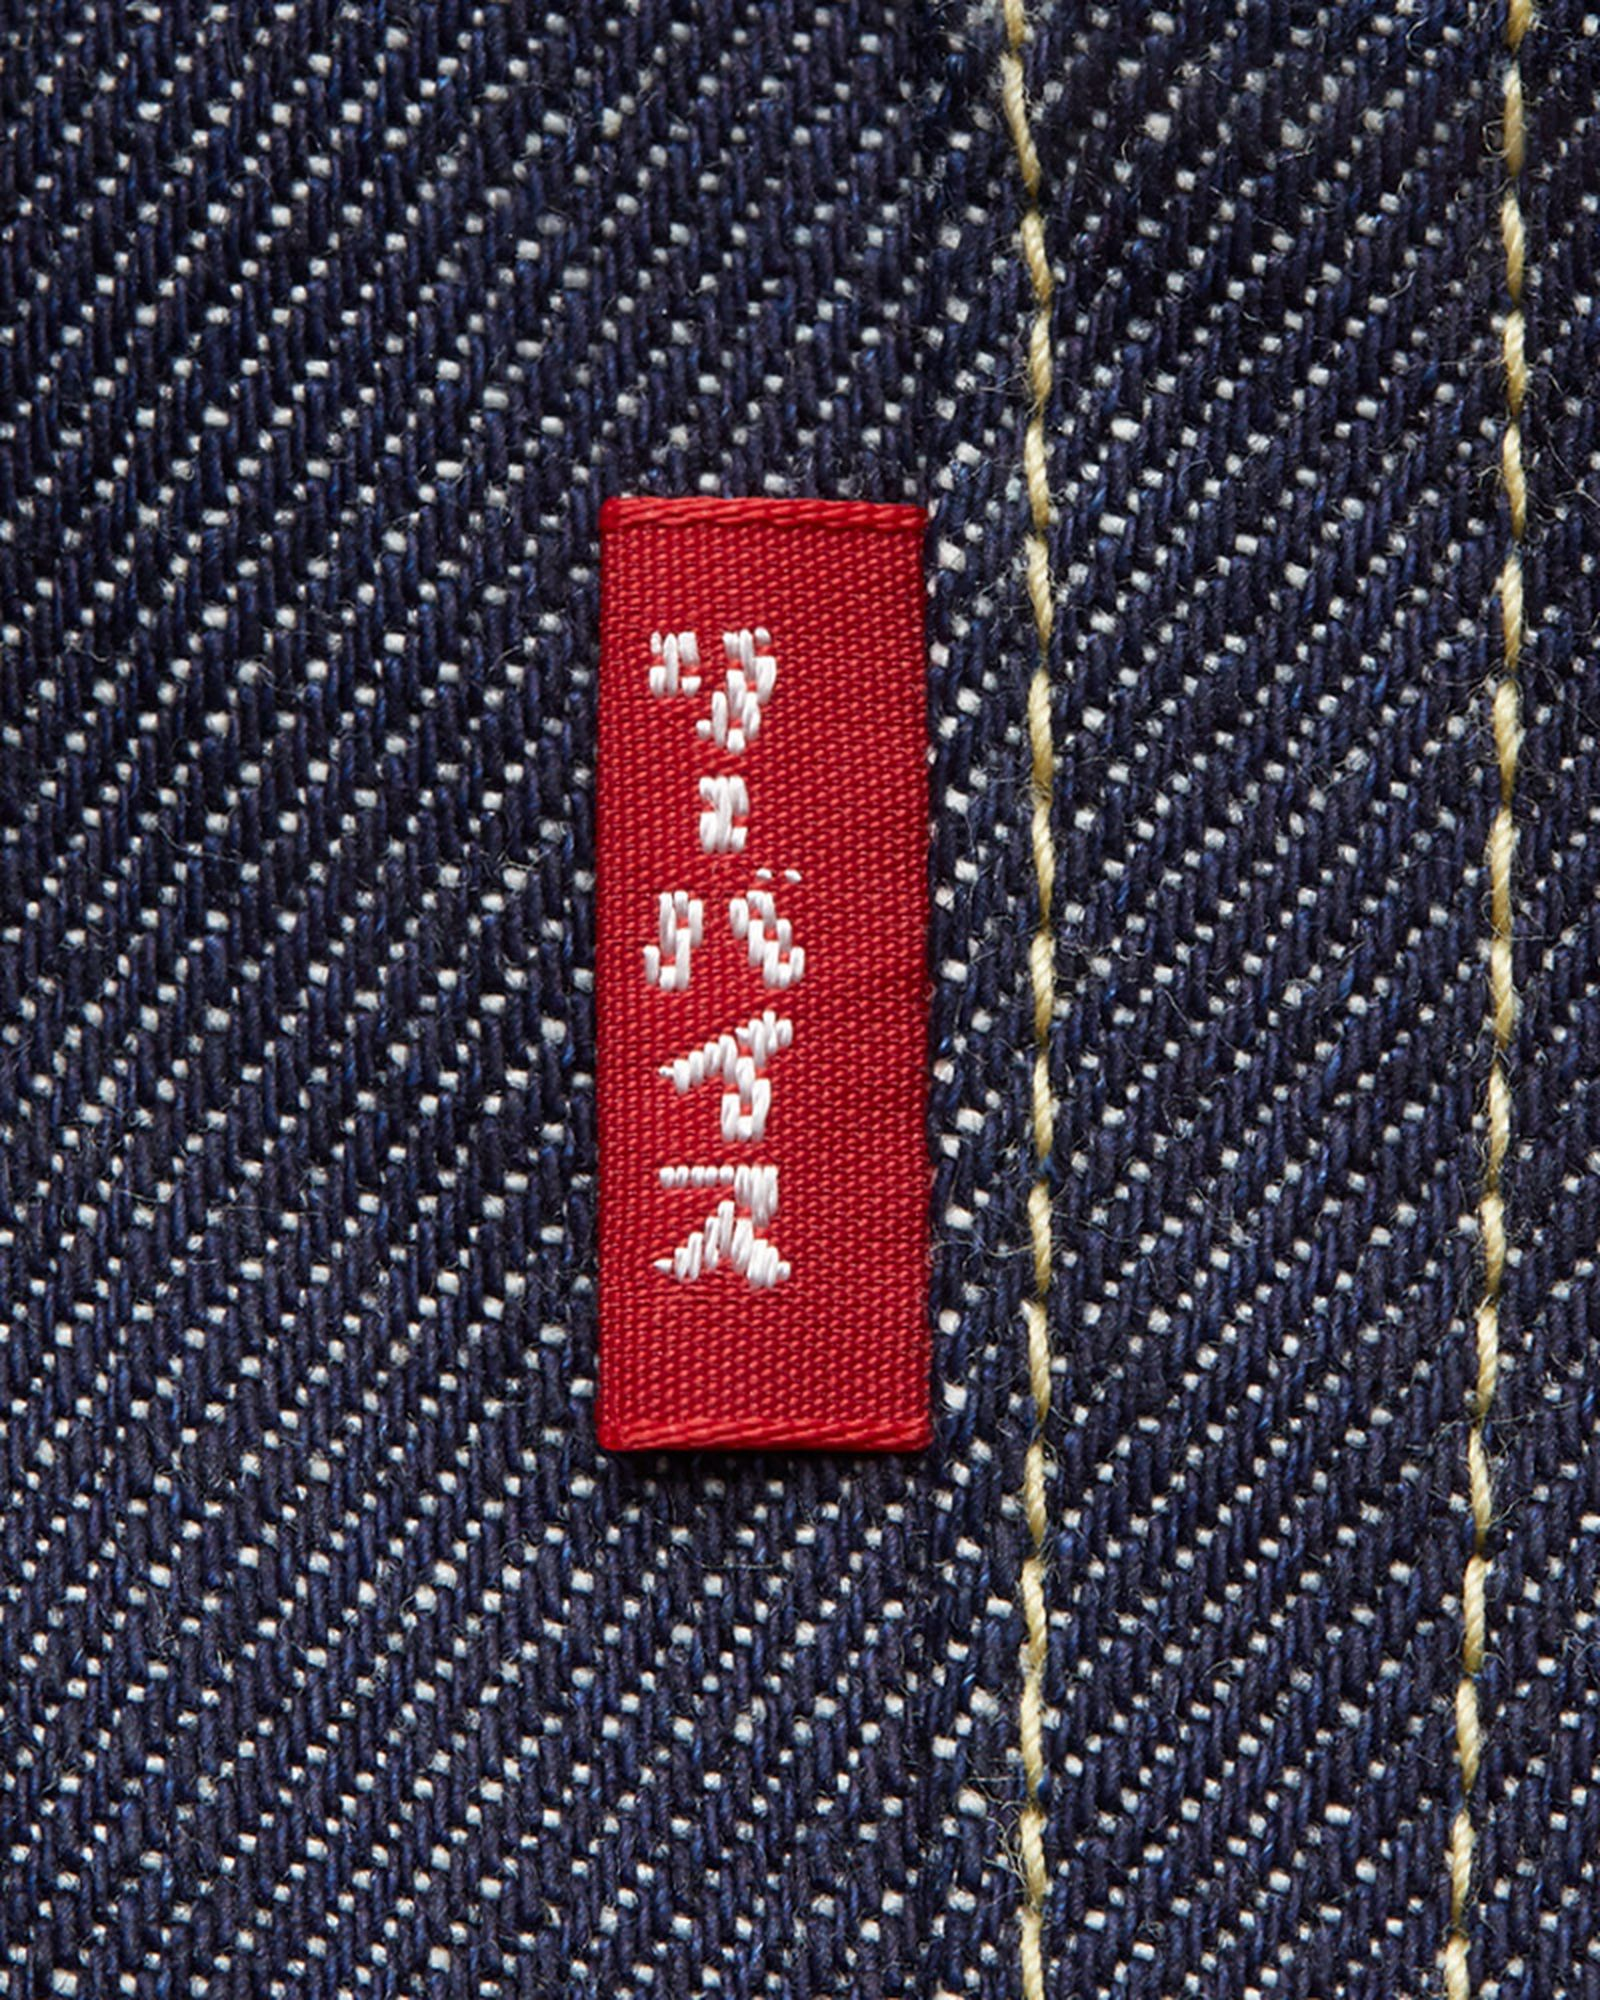 Levi's Vintage Clothing 1966 'Japan' 501 jeans red tab